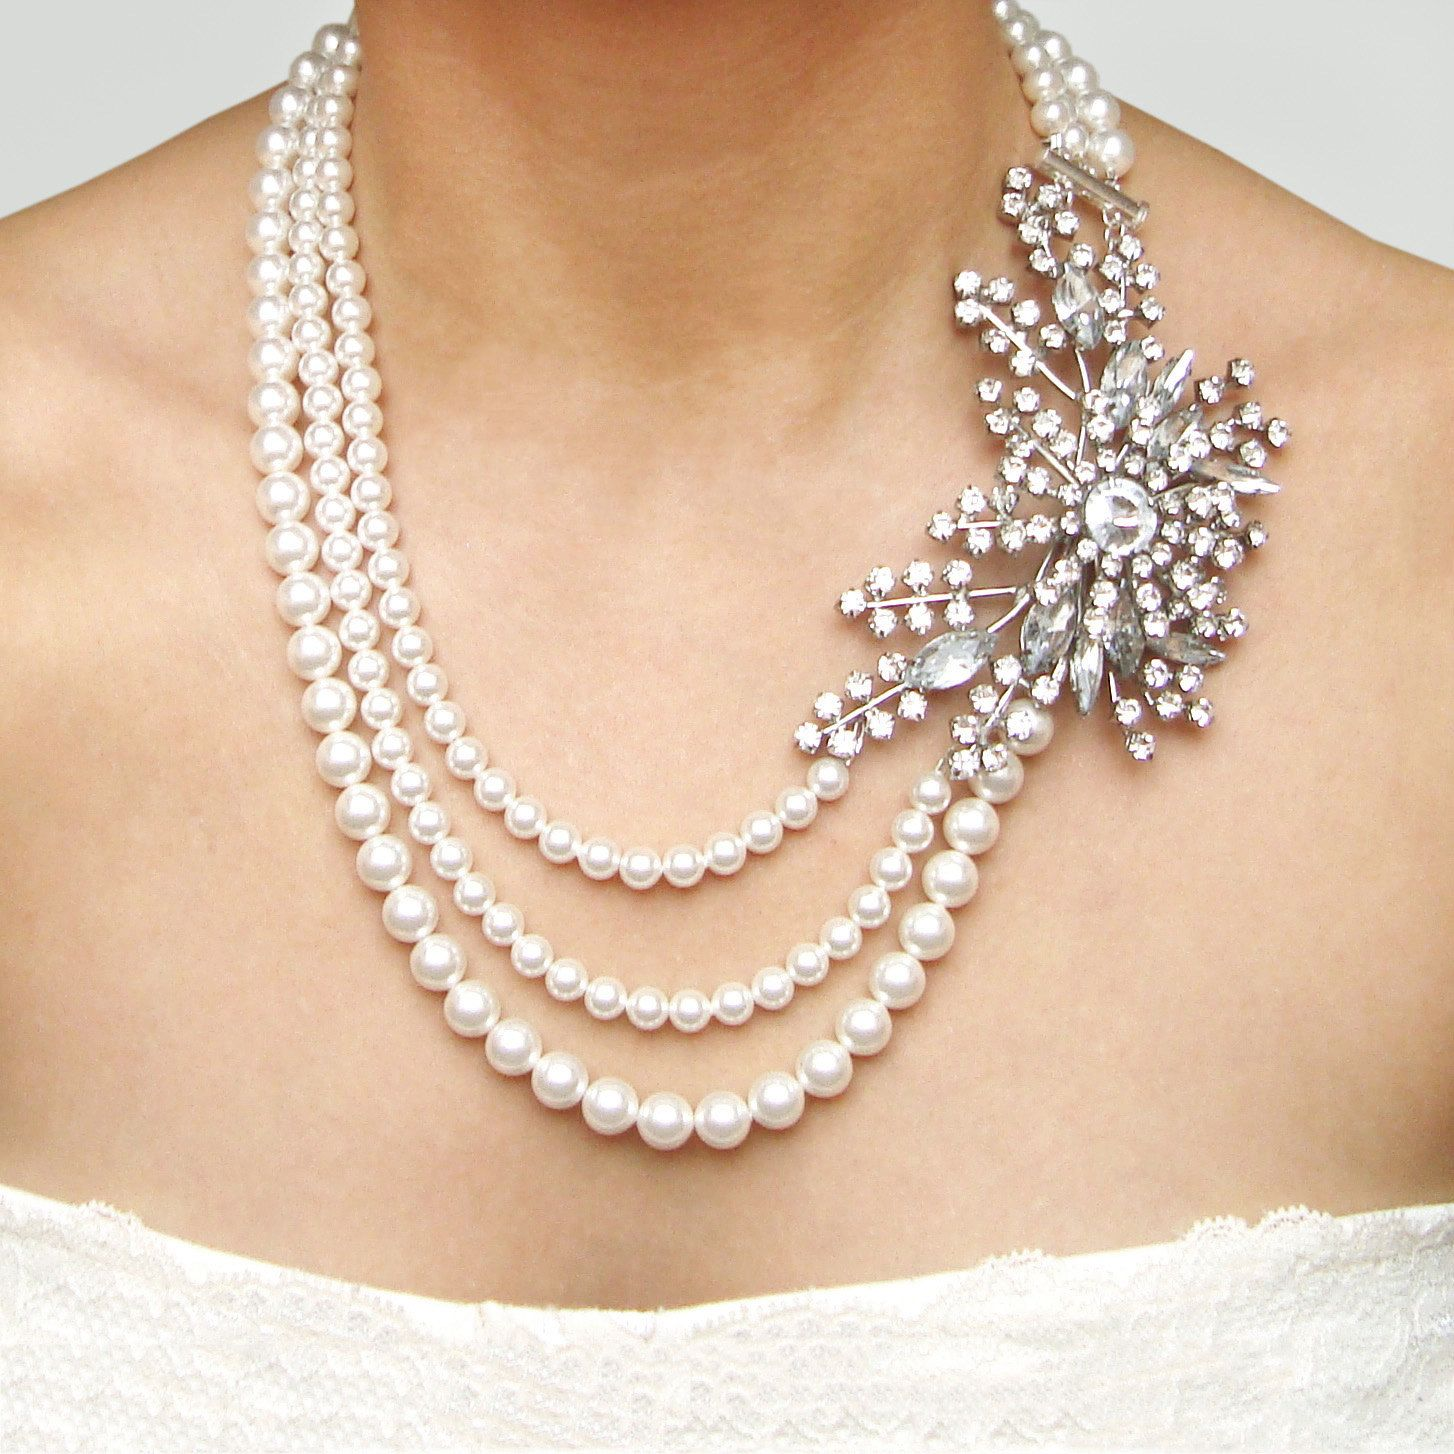 wedding jewelry Bridal jewelry